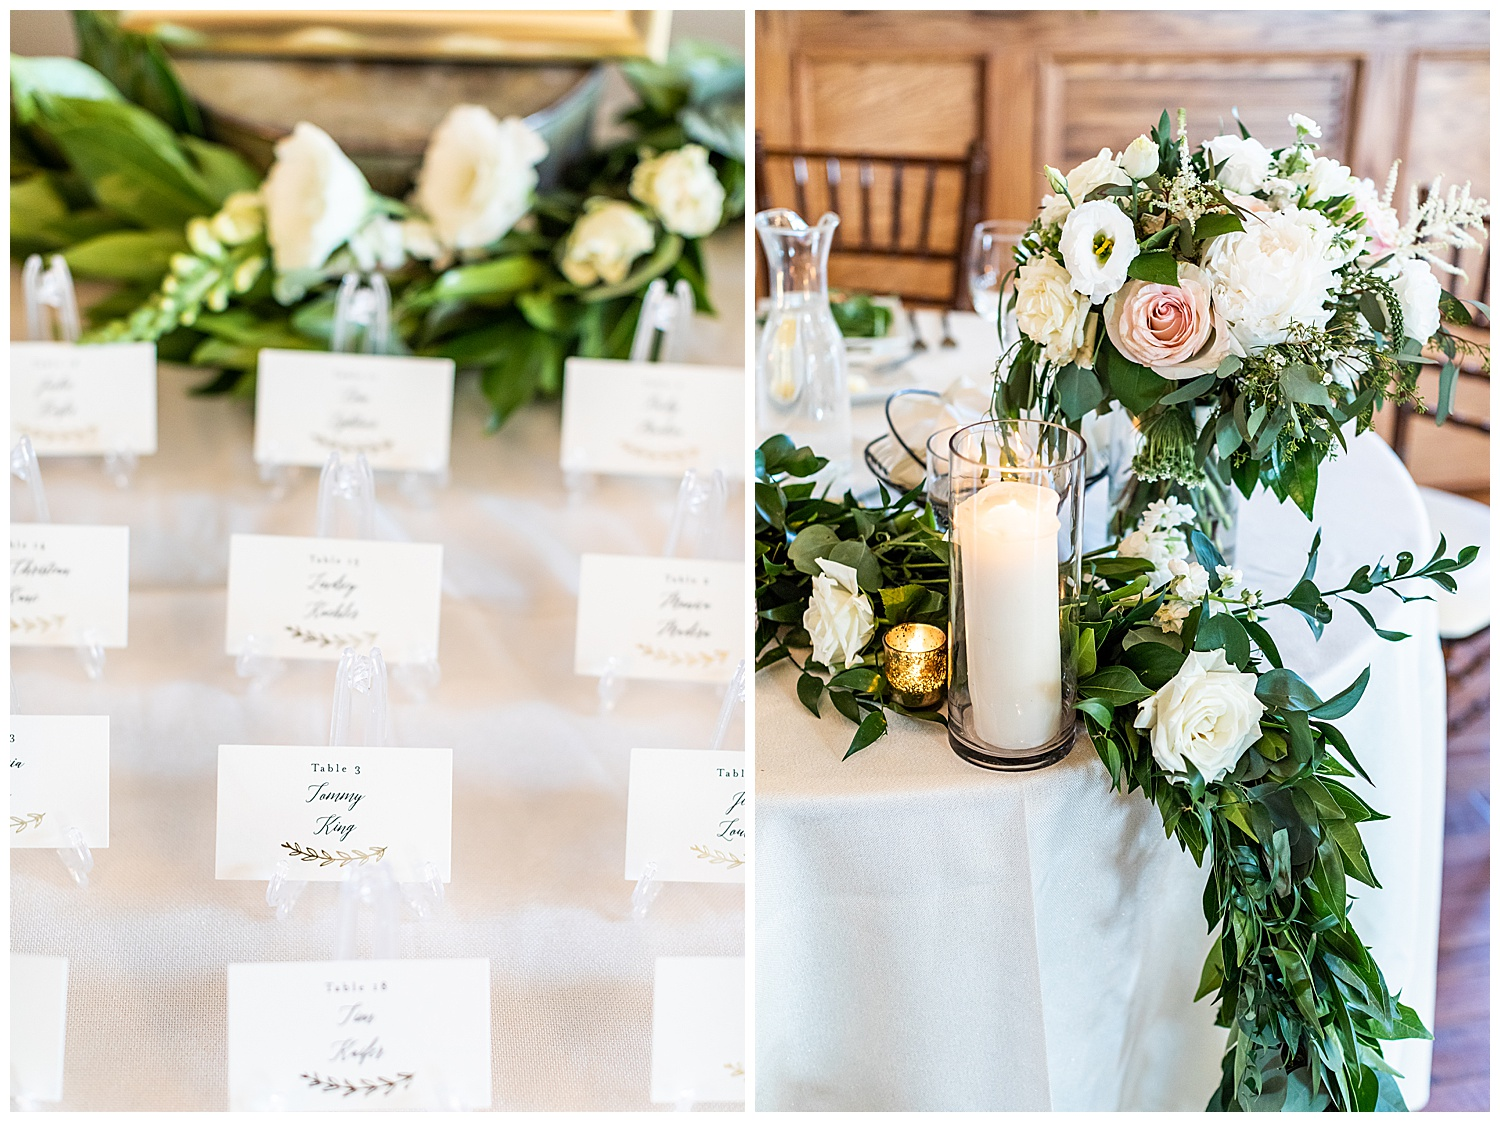 Brittany + Darryl Linwood Estate Wedding Living Radiant Photography photos_0120.jpg